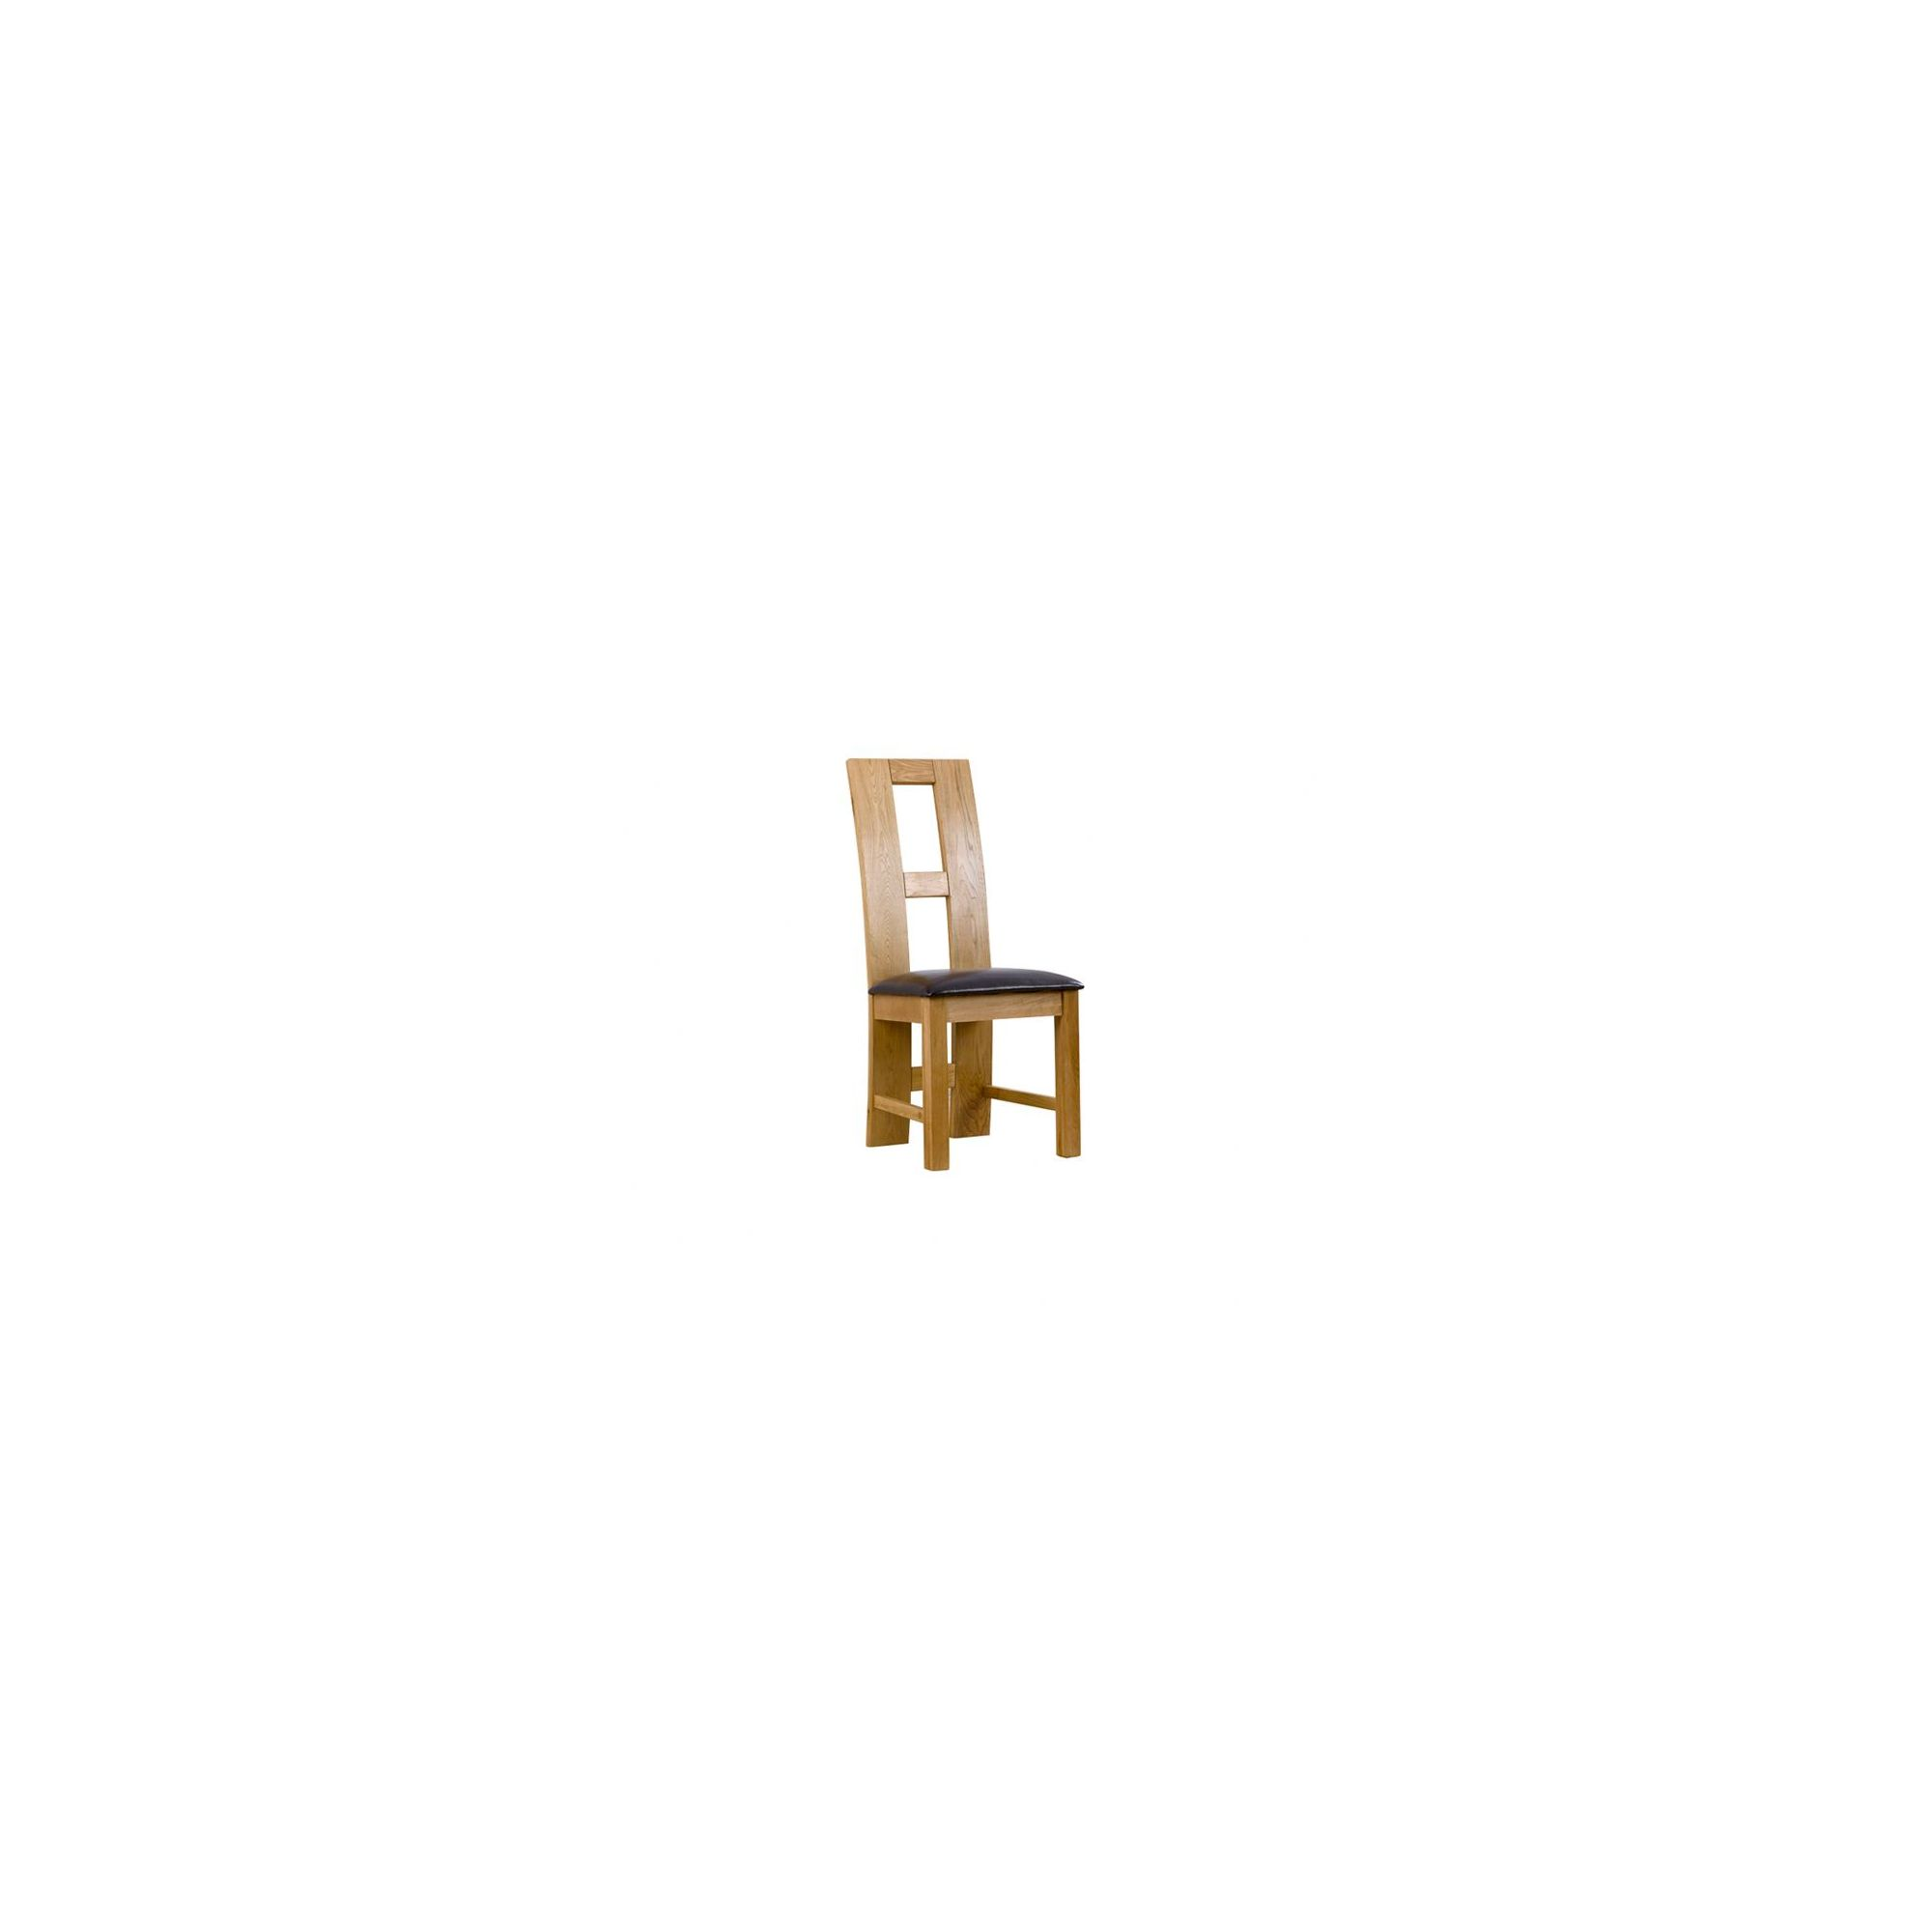 Mark Harris Furniture John Louis Dining Chair (Set of 2) - Bycast Cream